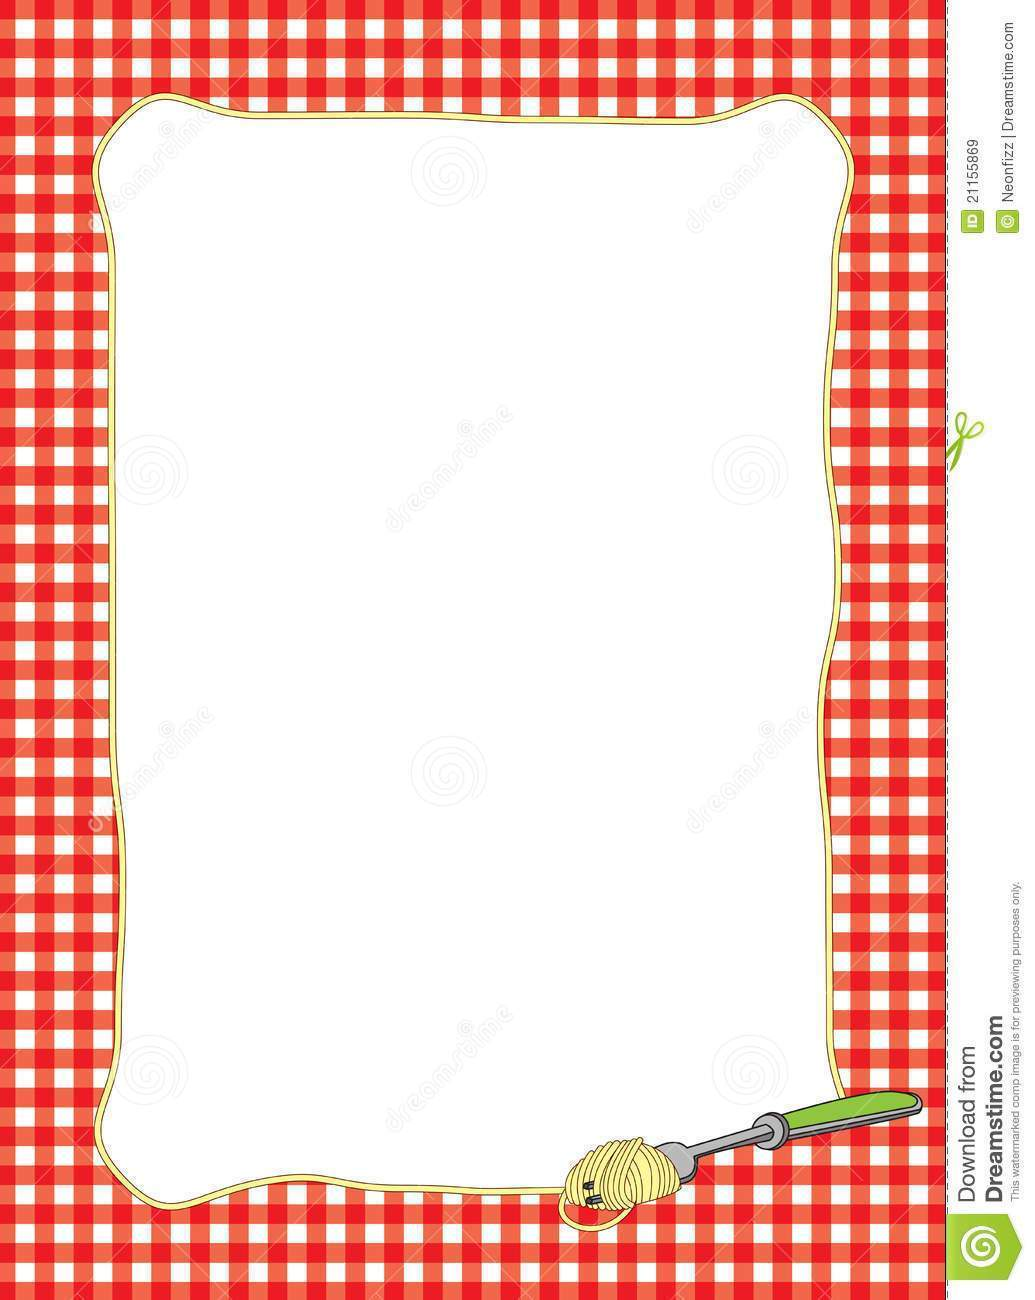 Kitchen border clipart clip transparent download Recipe Border Clipart Suggest Tuscany Style Kitchen - Benimmulku clip transparent download